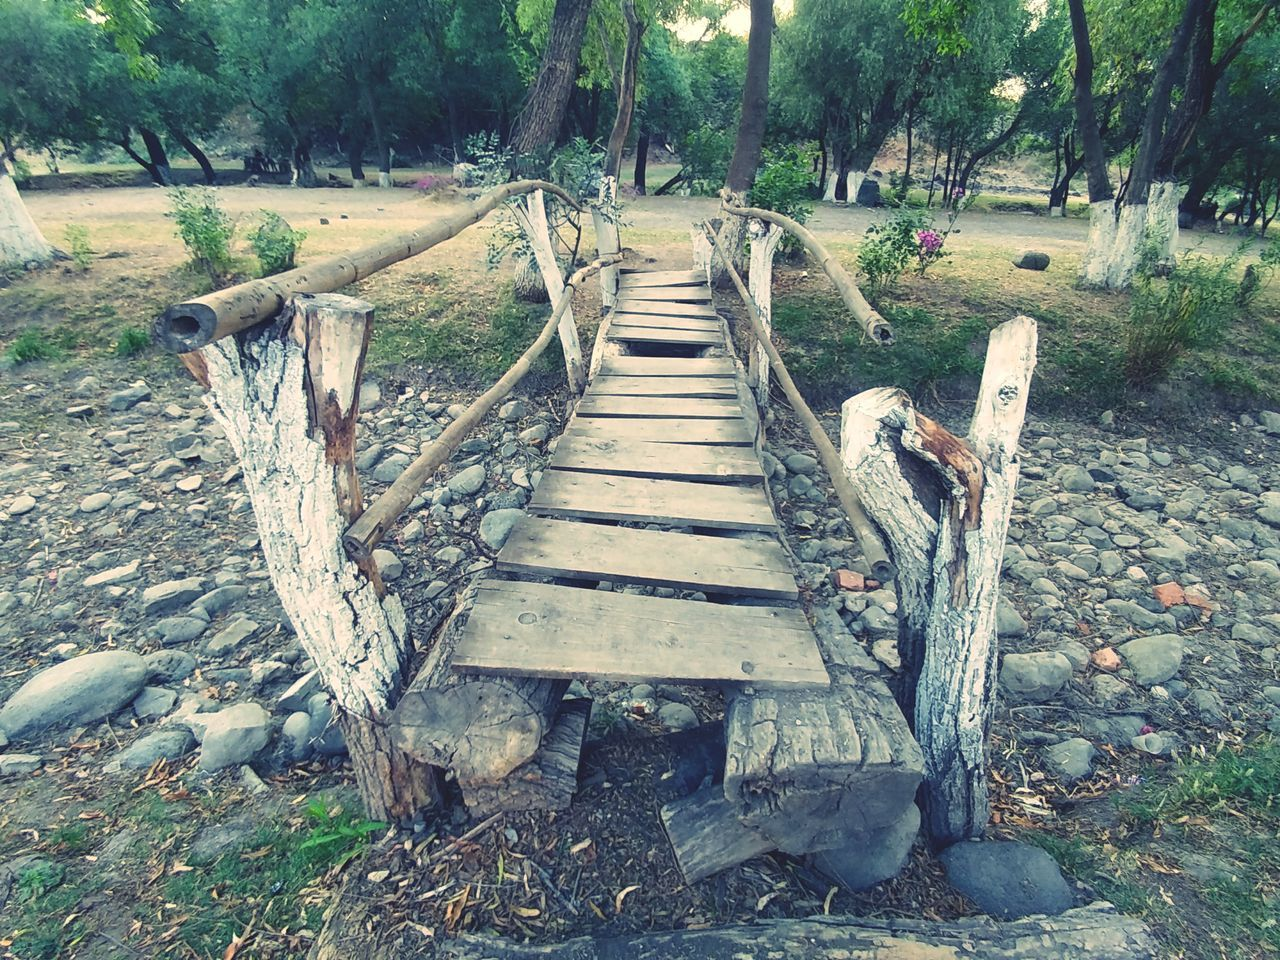 Tree Nature Wood - Material Outdoors Day No People Bridge